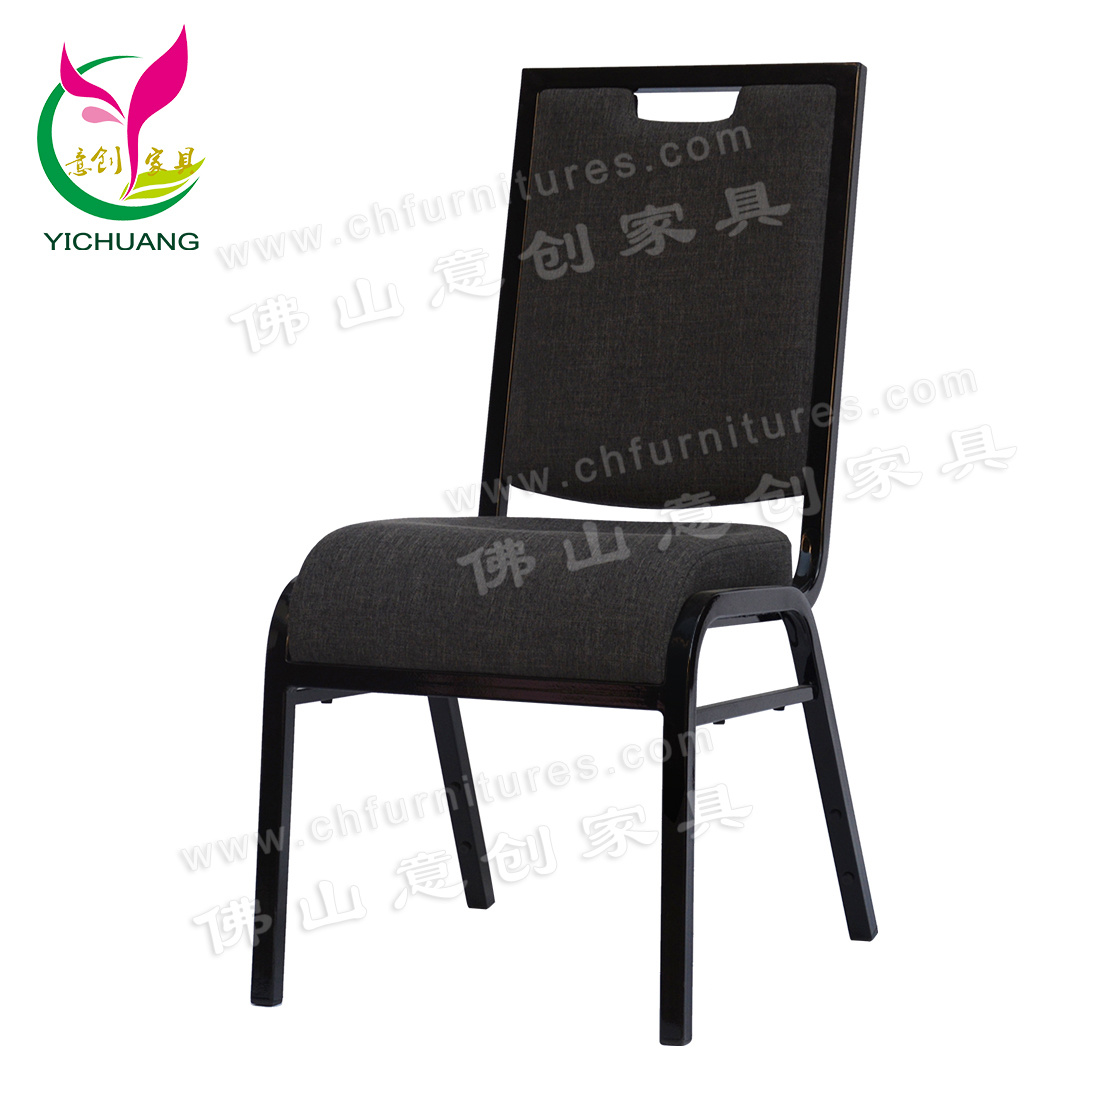 Hot Item Yc Zl46 High Quality And Elegant Black Metal Hotel Stacking Banquet Chair